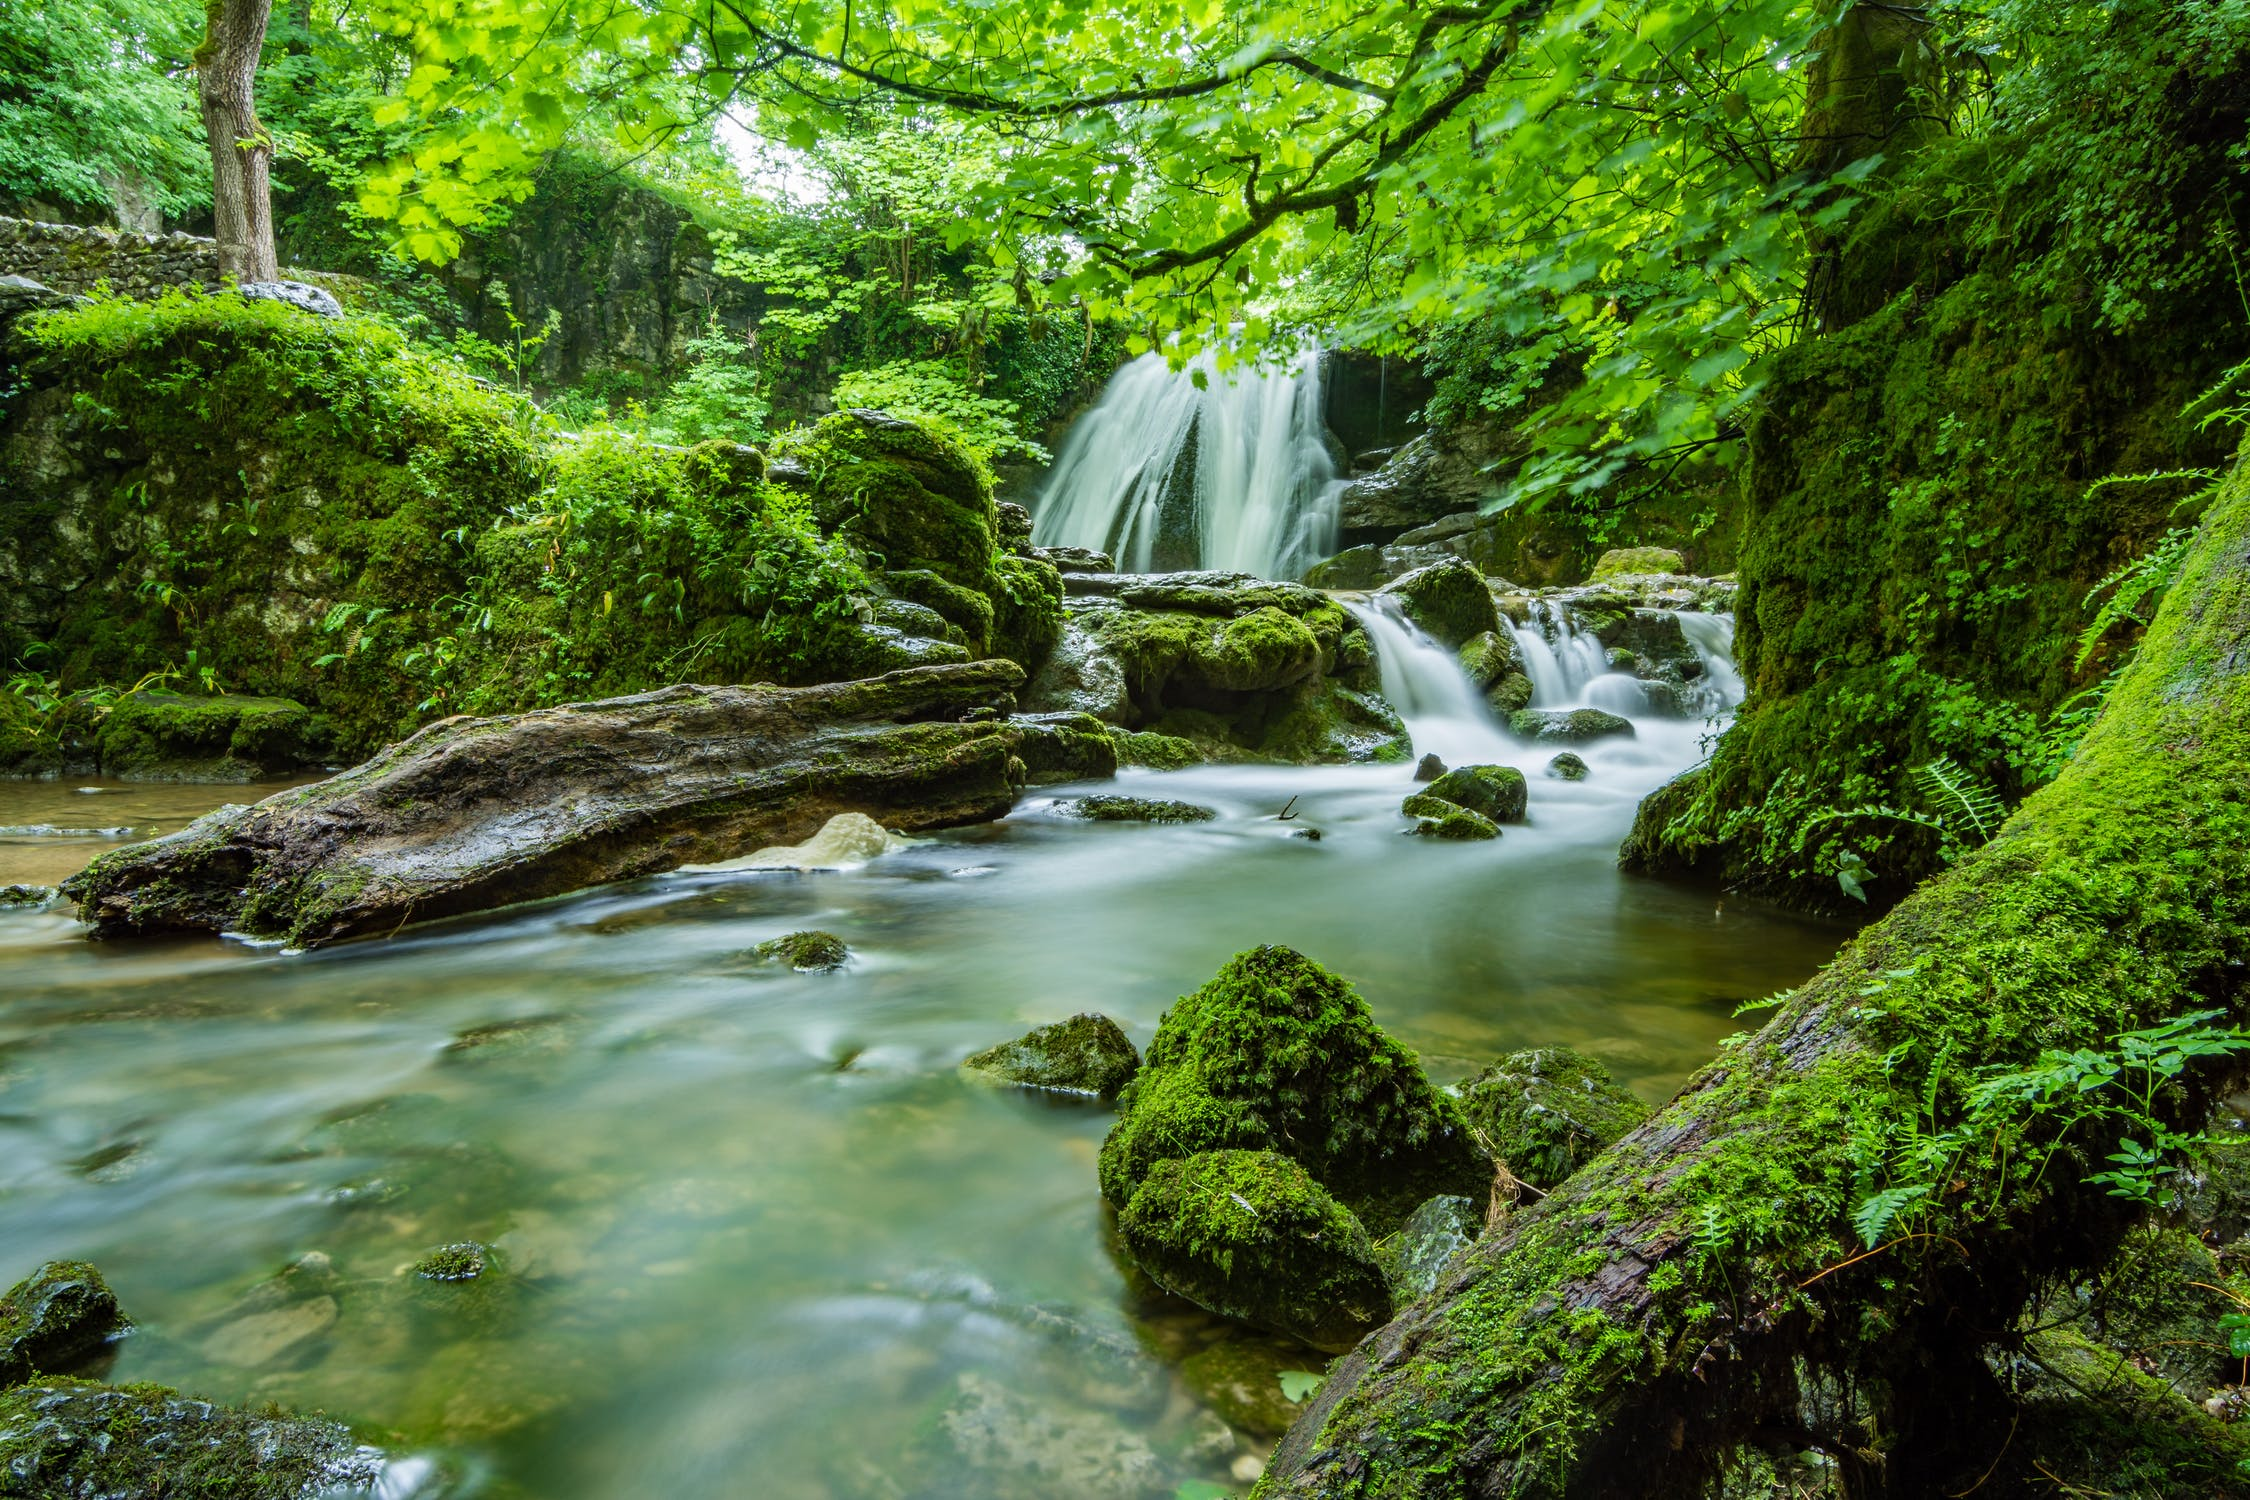 waterfall surrounded by green trees